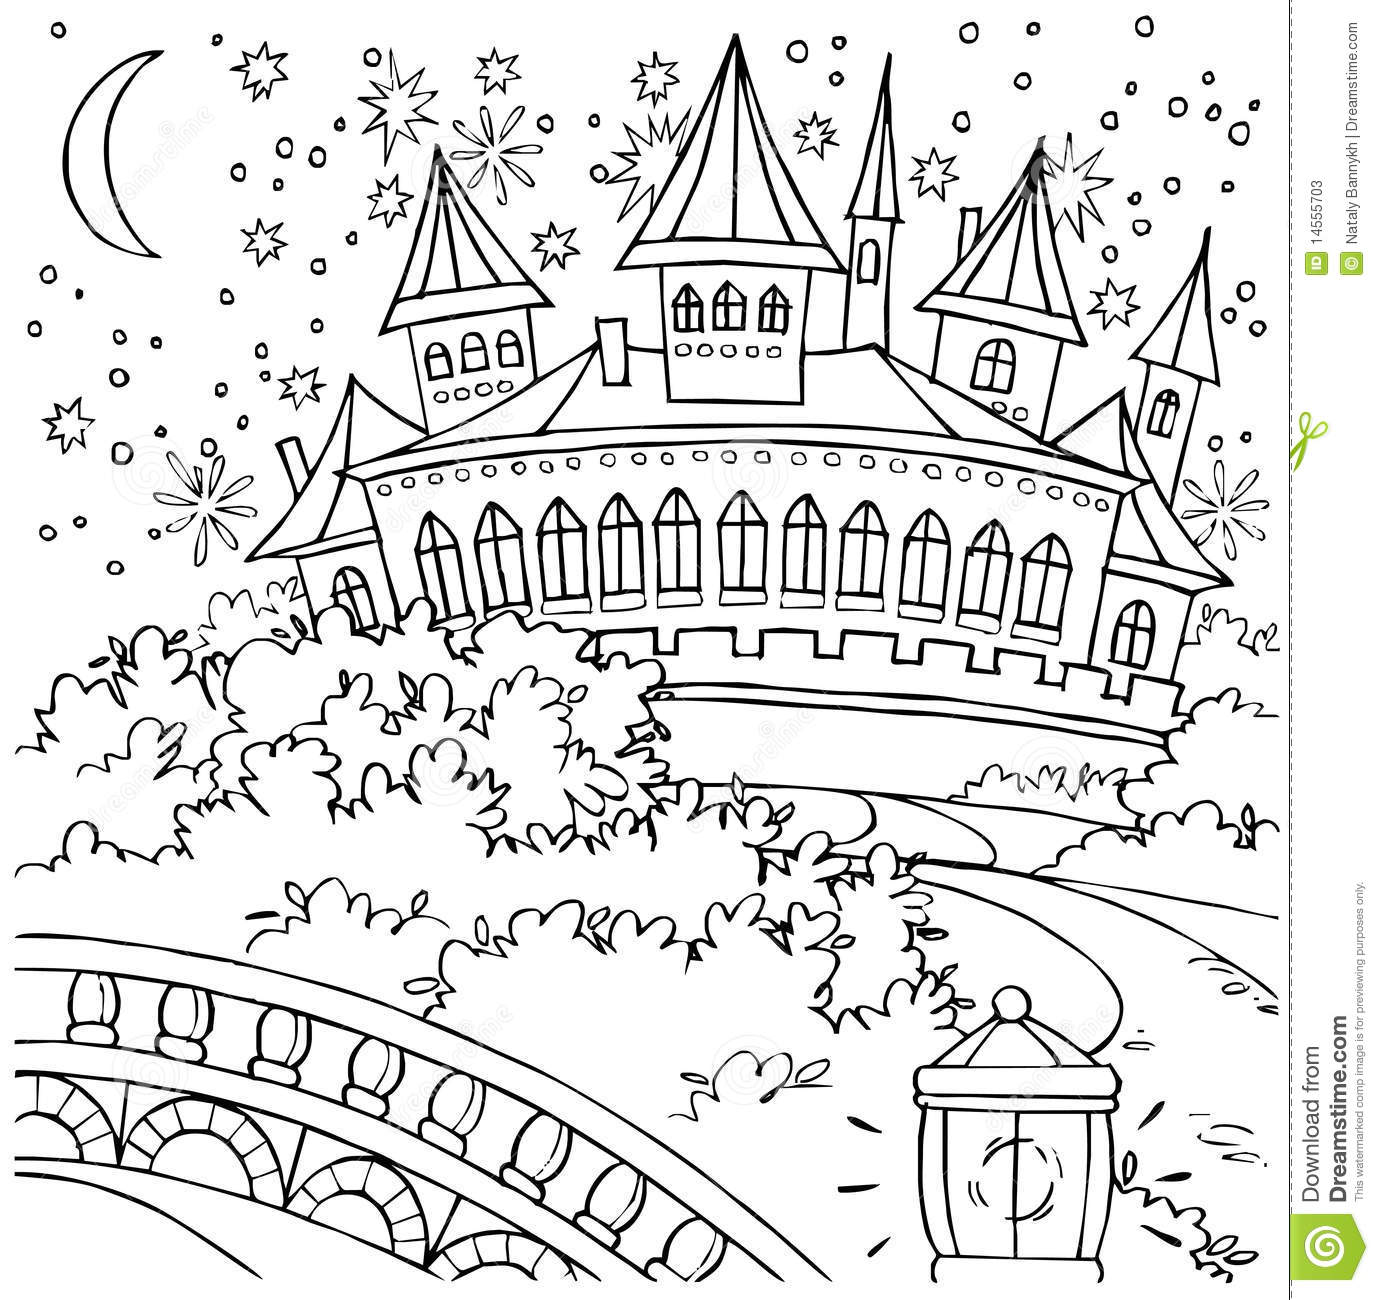 Illustration coloring page fairy tale castle with many towers